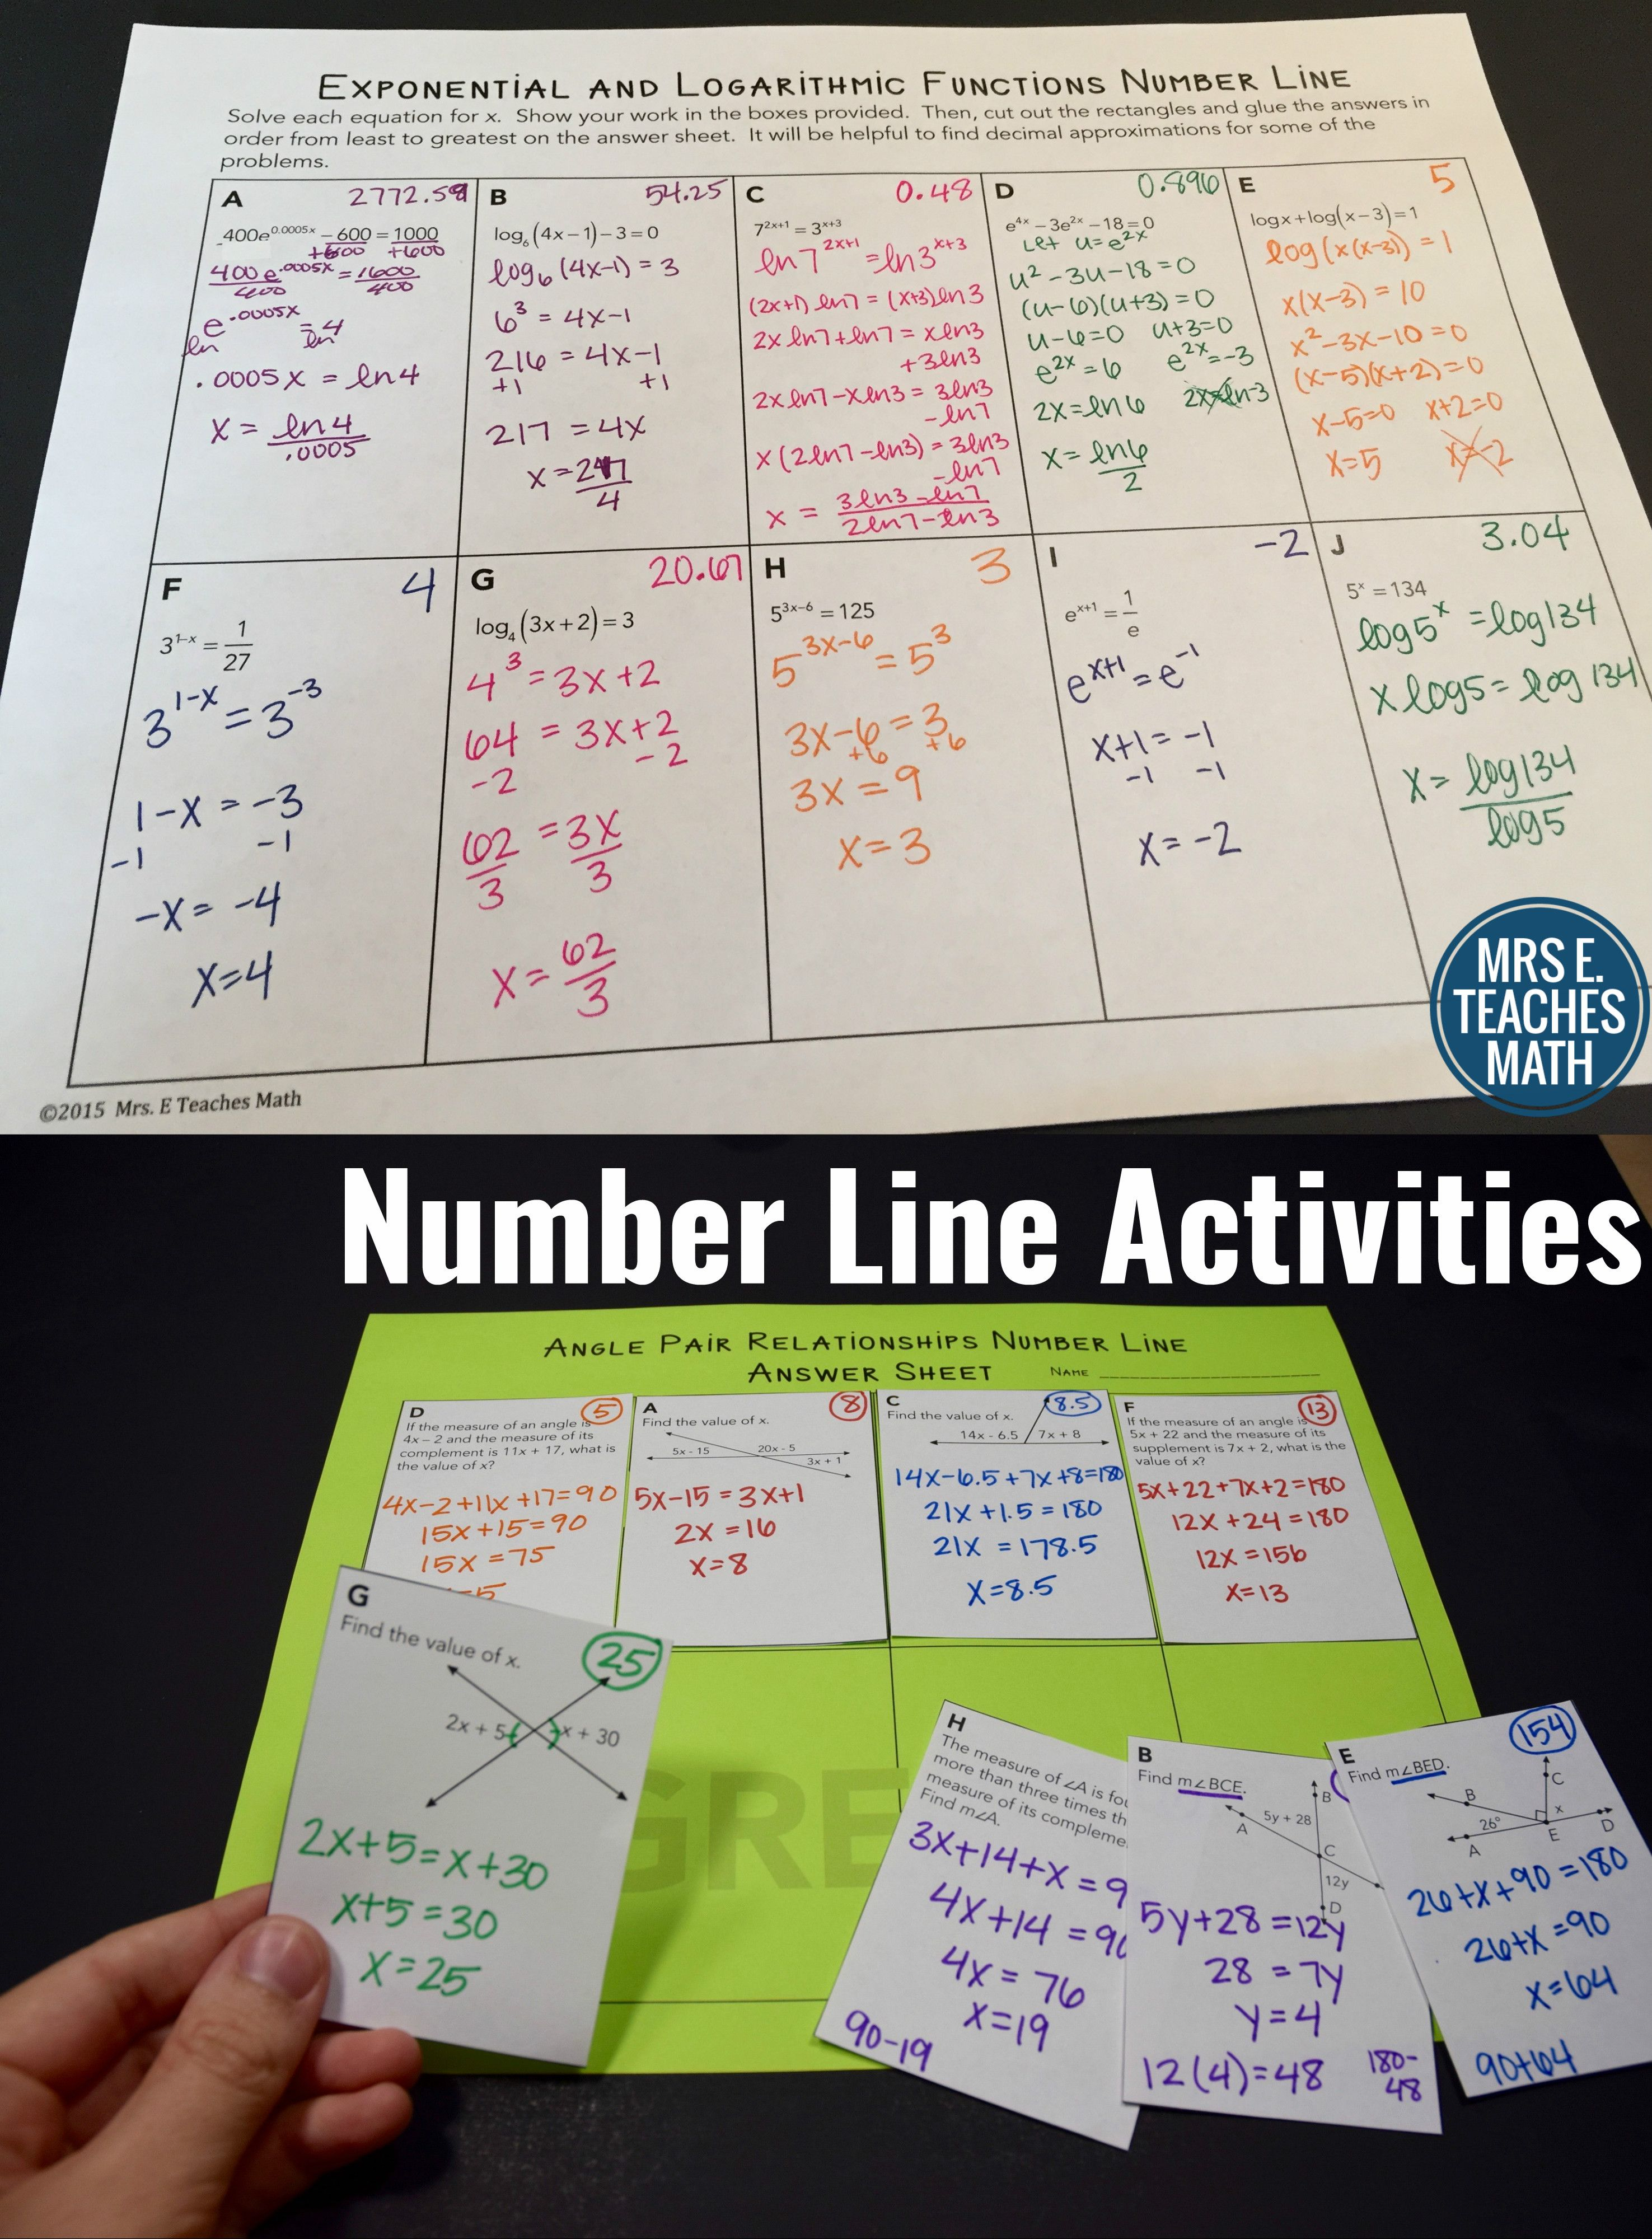 Number Line Activities Help Students Practice A Skill